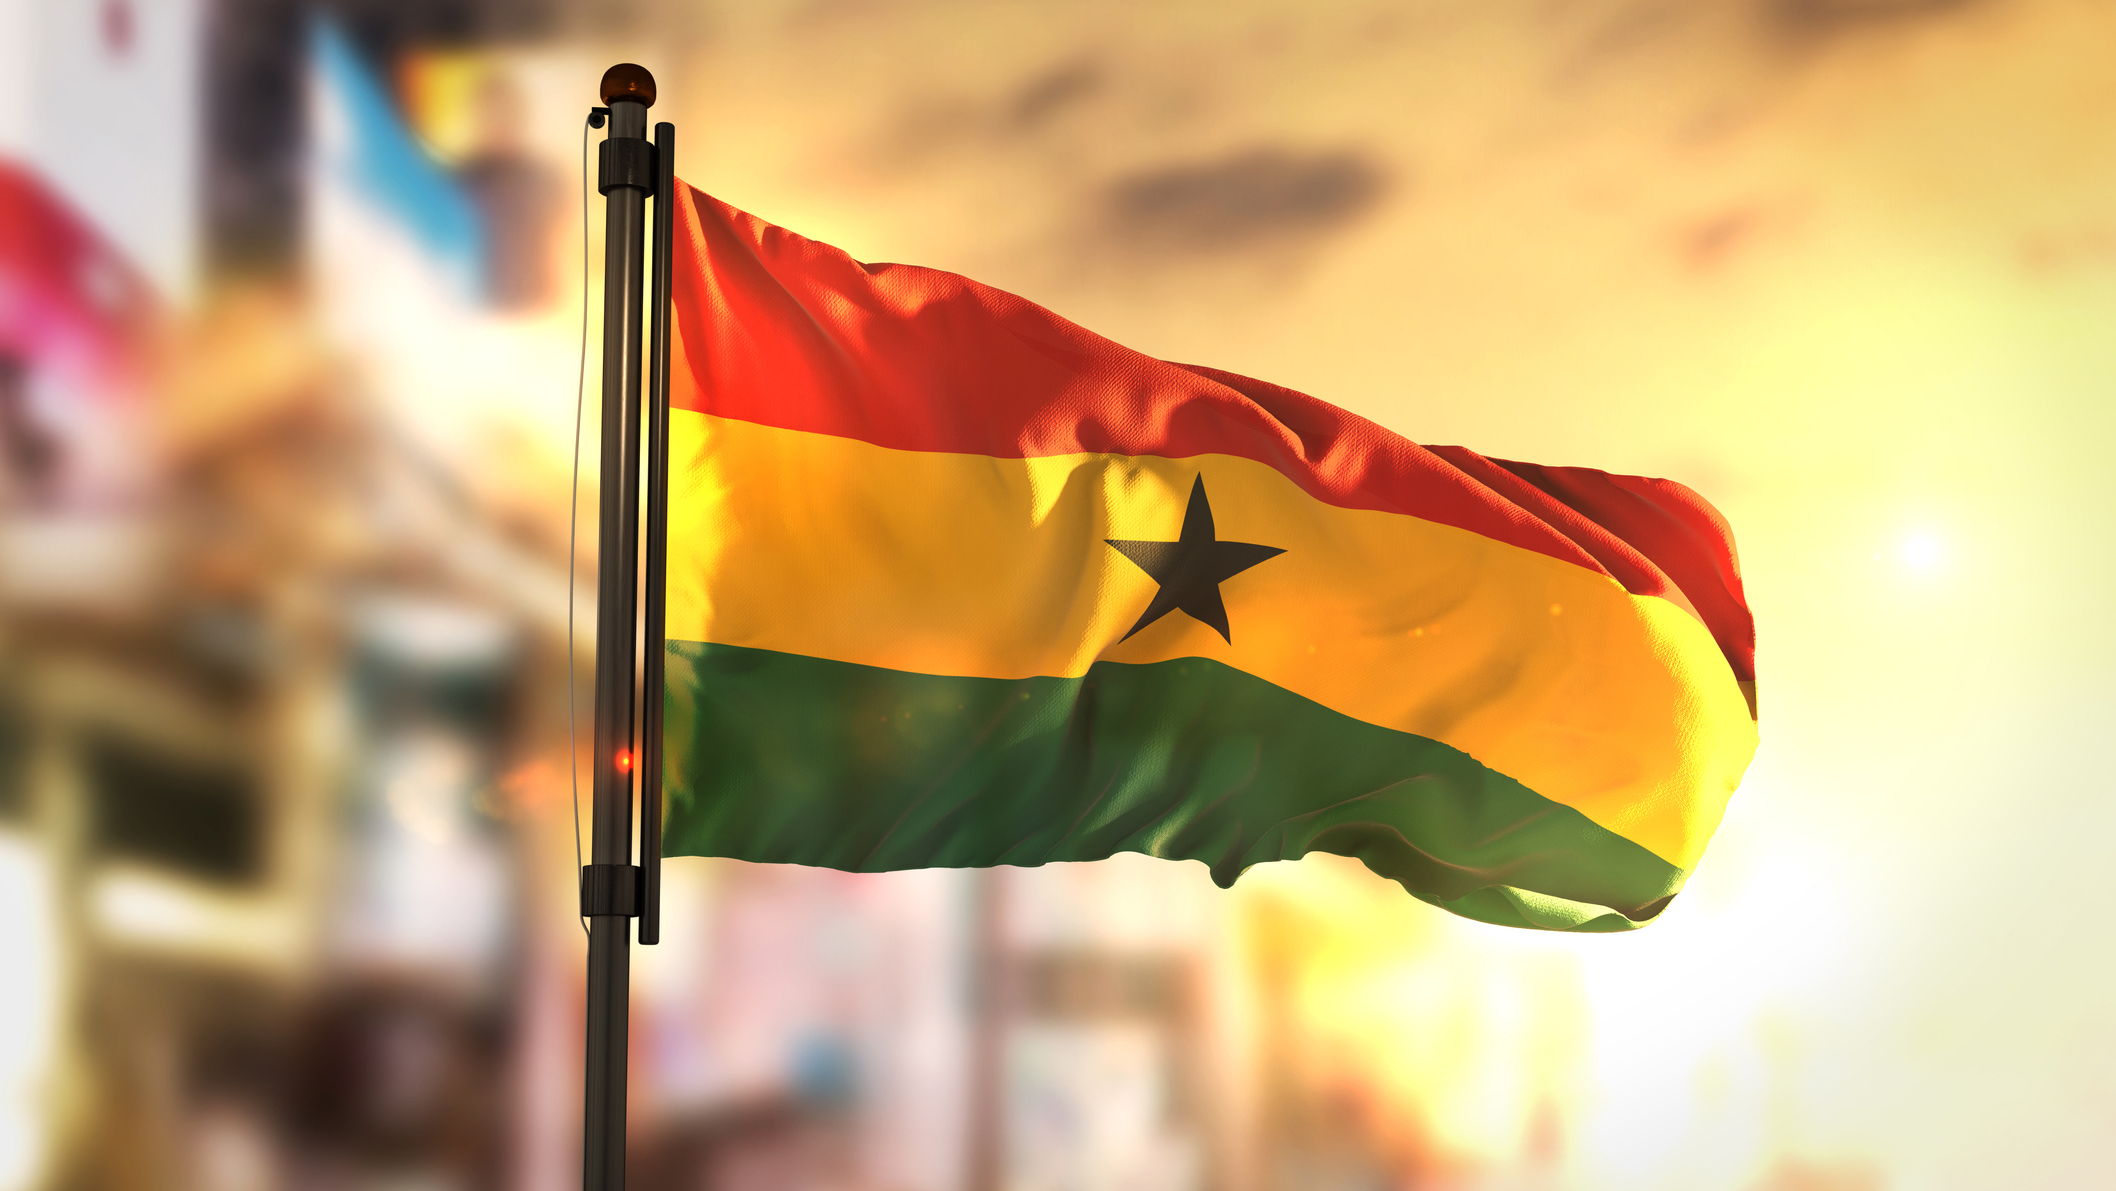 Ghana selected as host country for 2019 INTEREST Conference